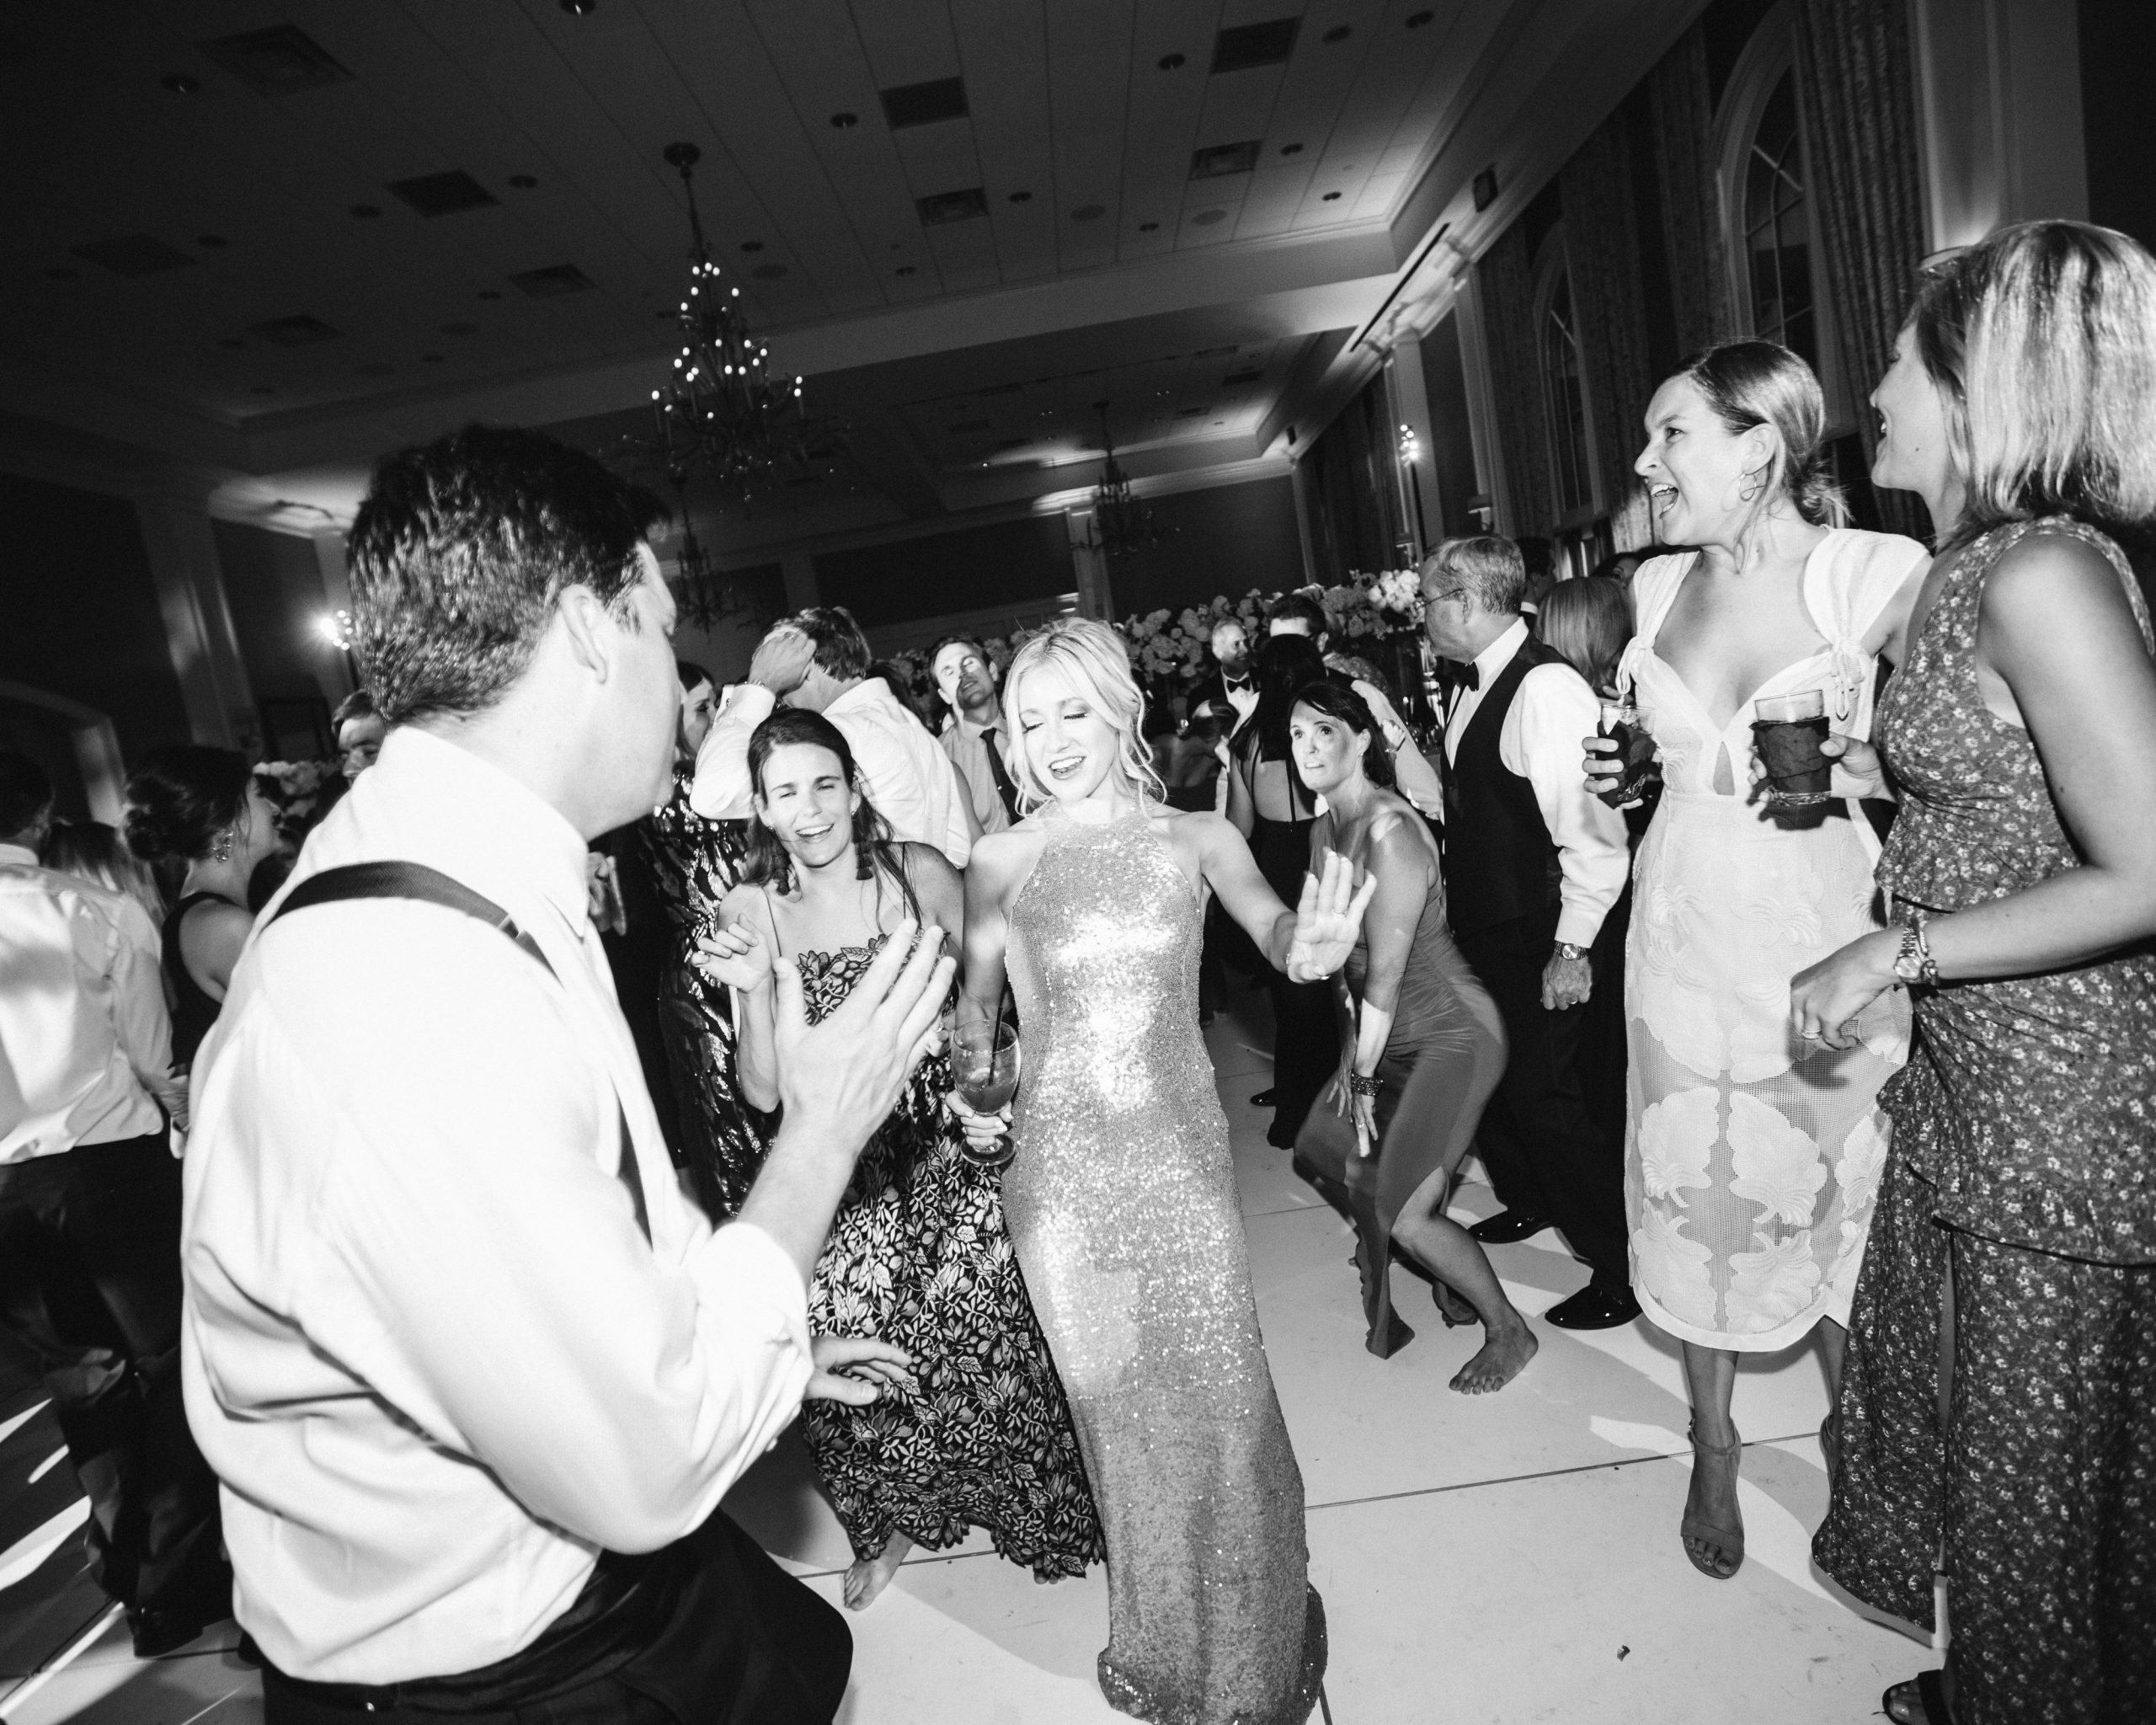 Black and white image of a crowd dancing at a wedding to illustrate wedding guest etiquette